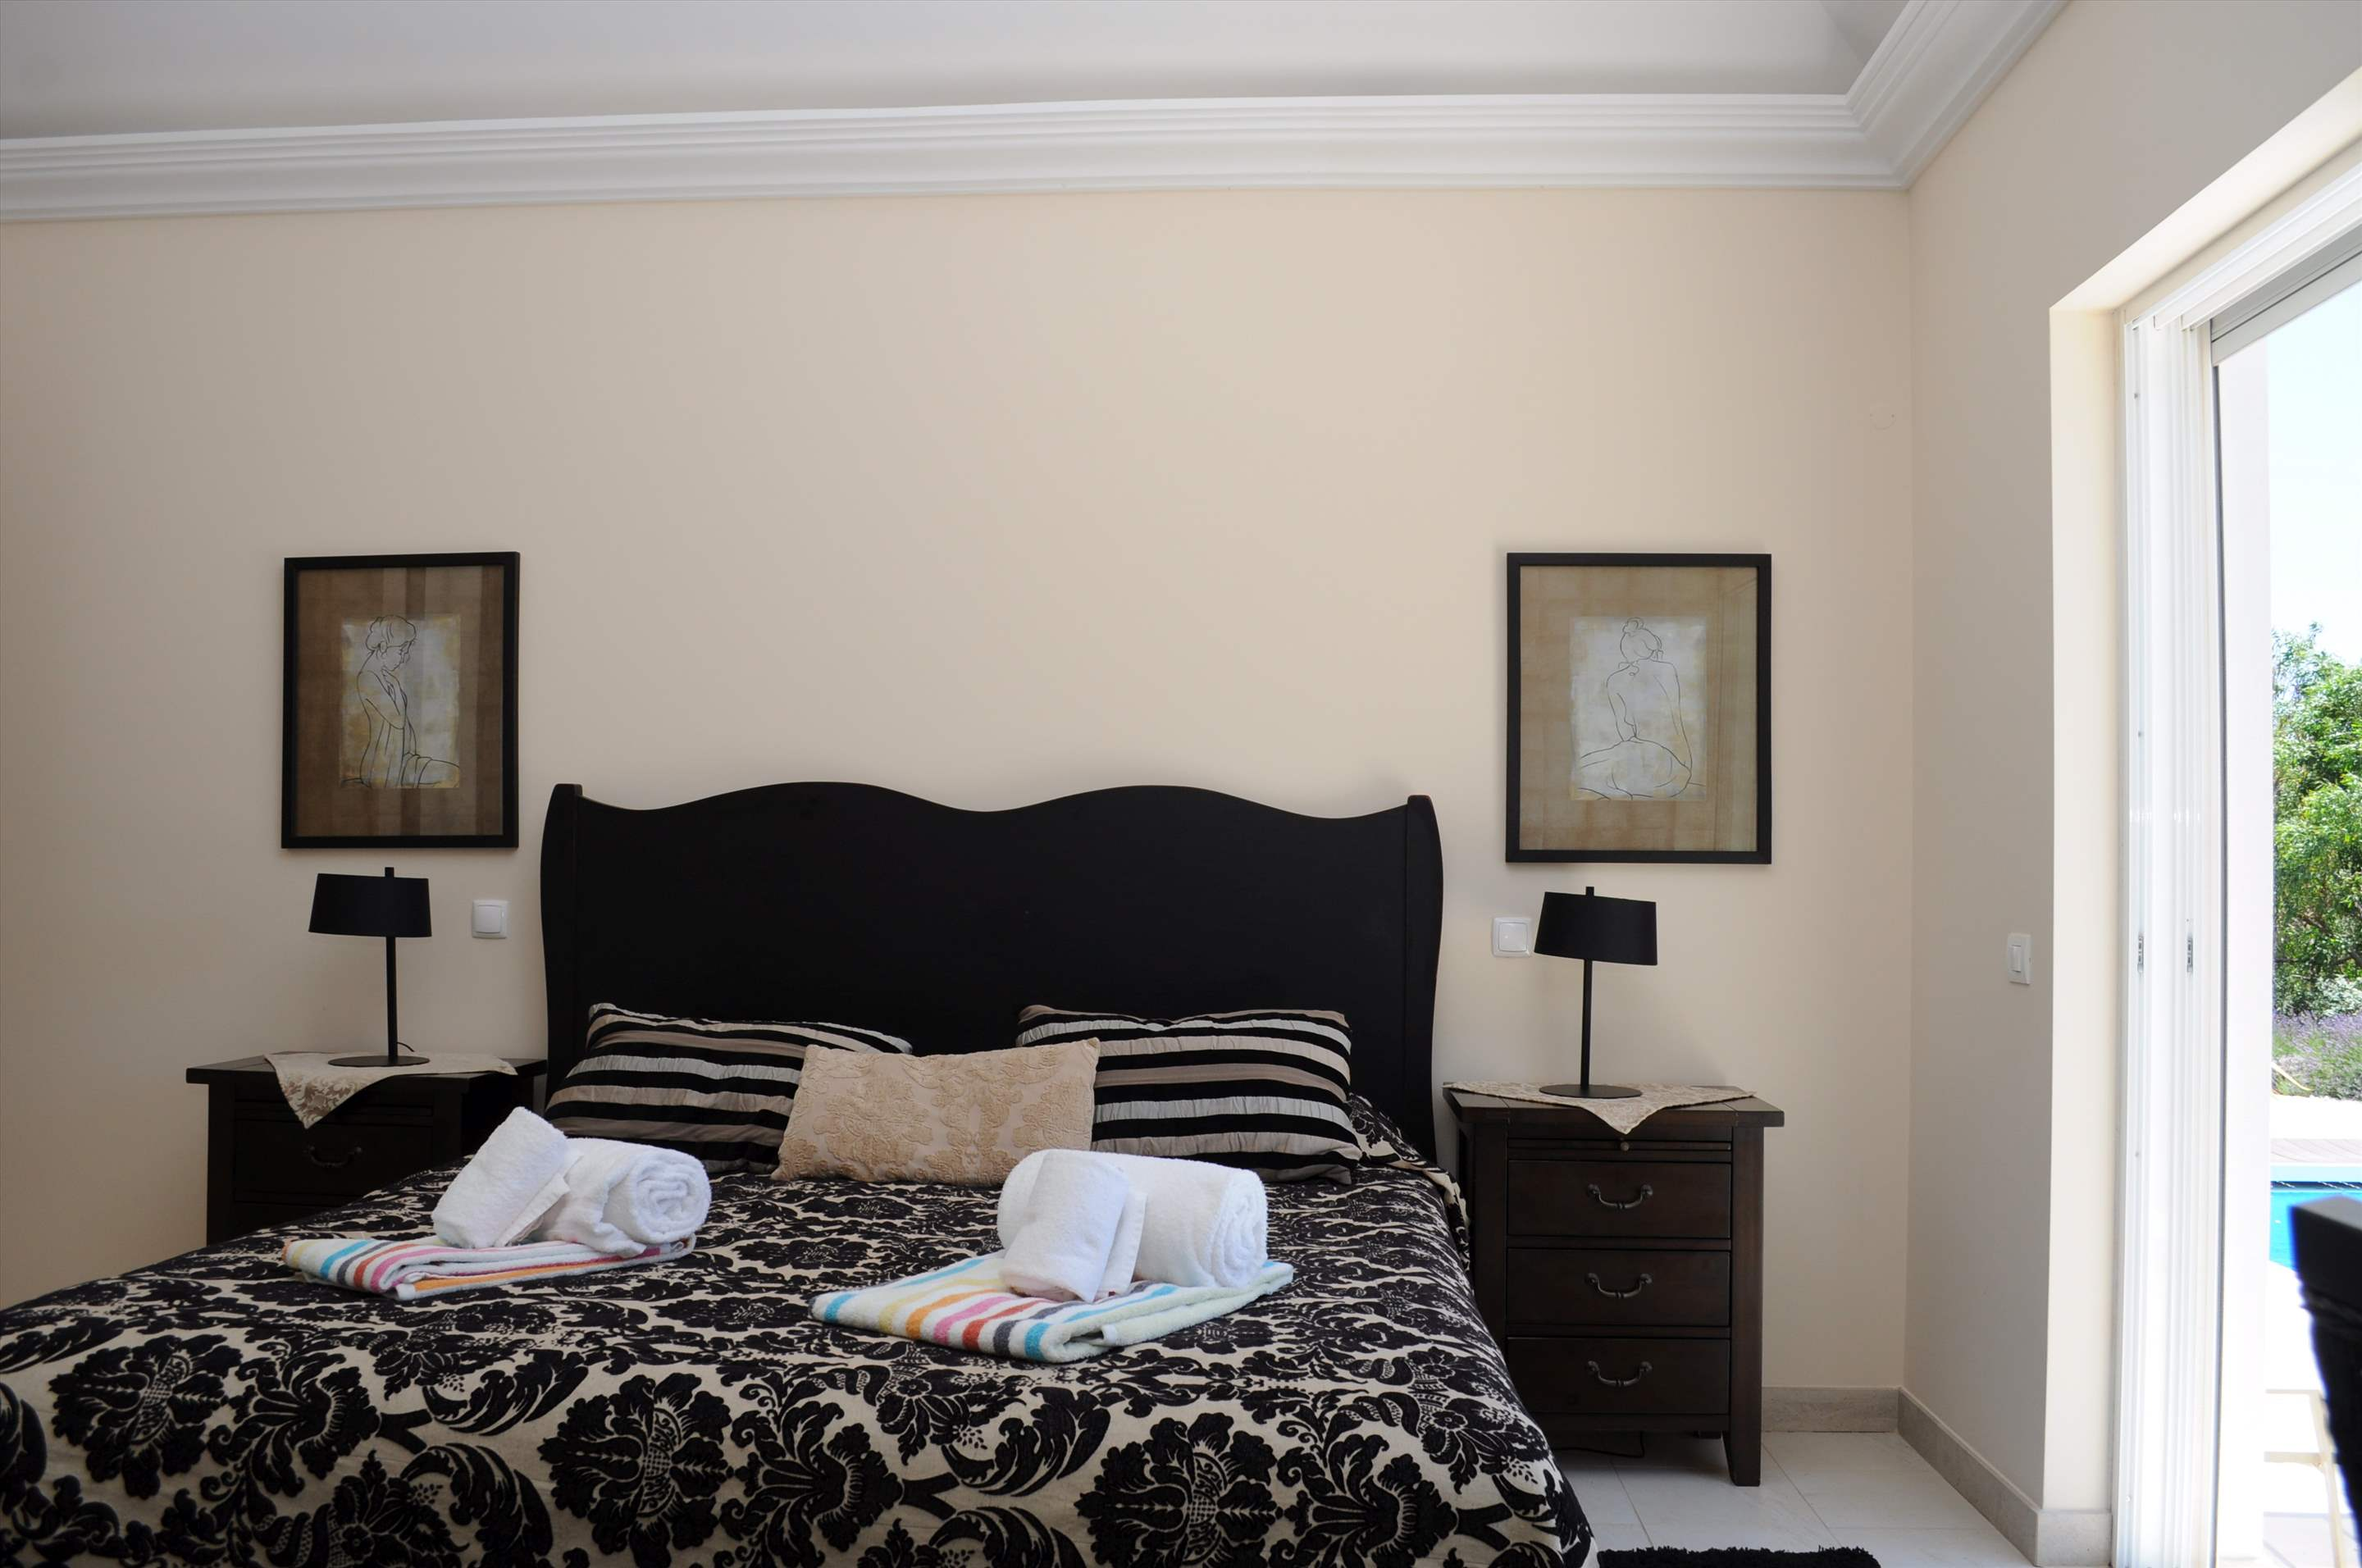 Martinhal Luxury Villa No.18, 5 bedroom villa in Martinhal Sagres, Algarve Photo #18